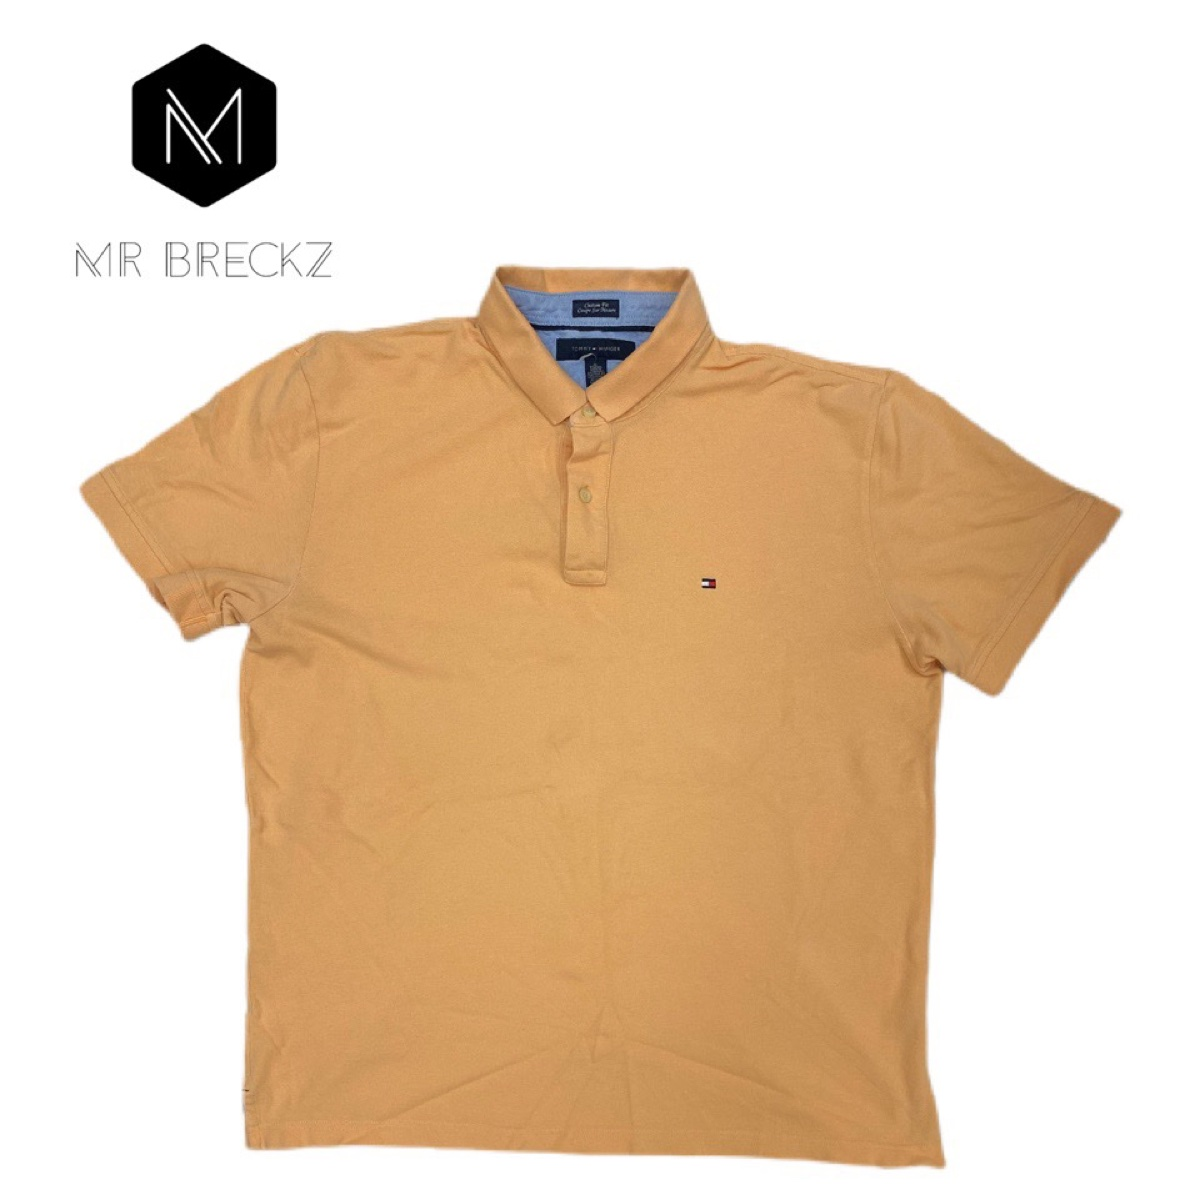 Authentic Tommy Hilfiger vintage peach polo